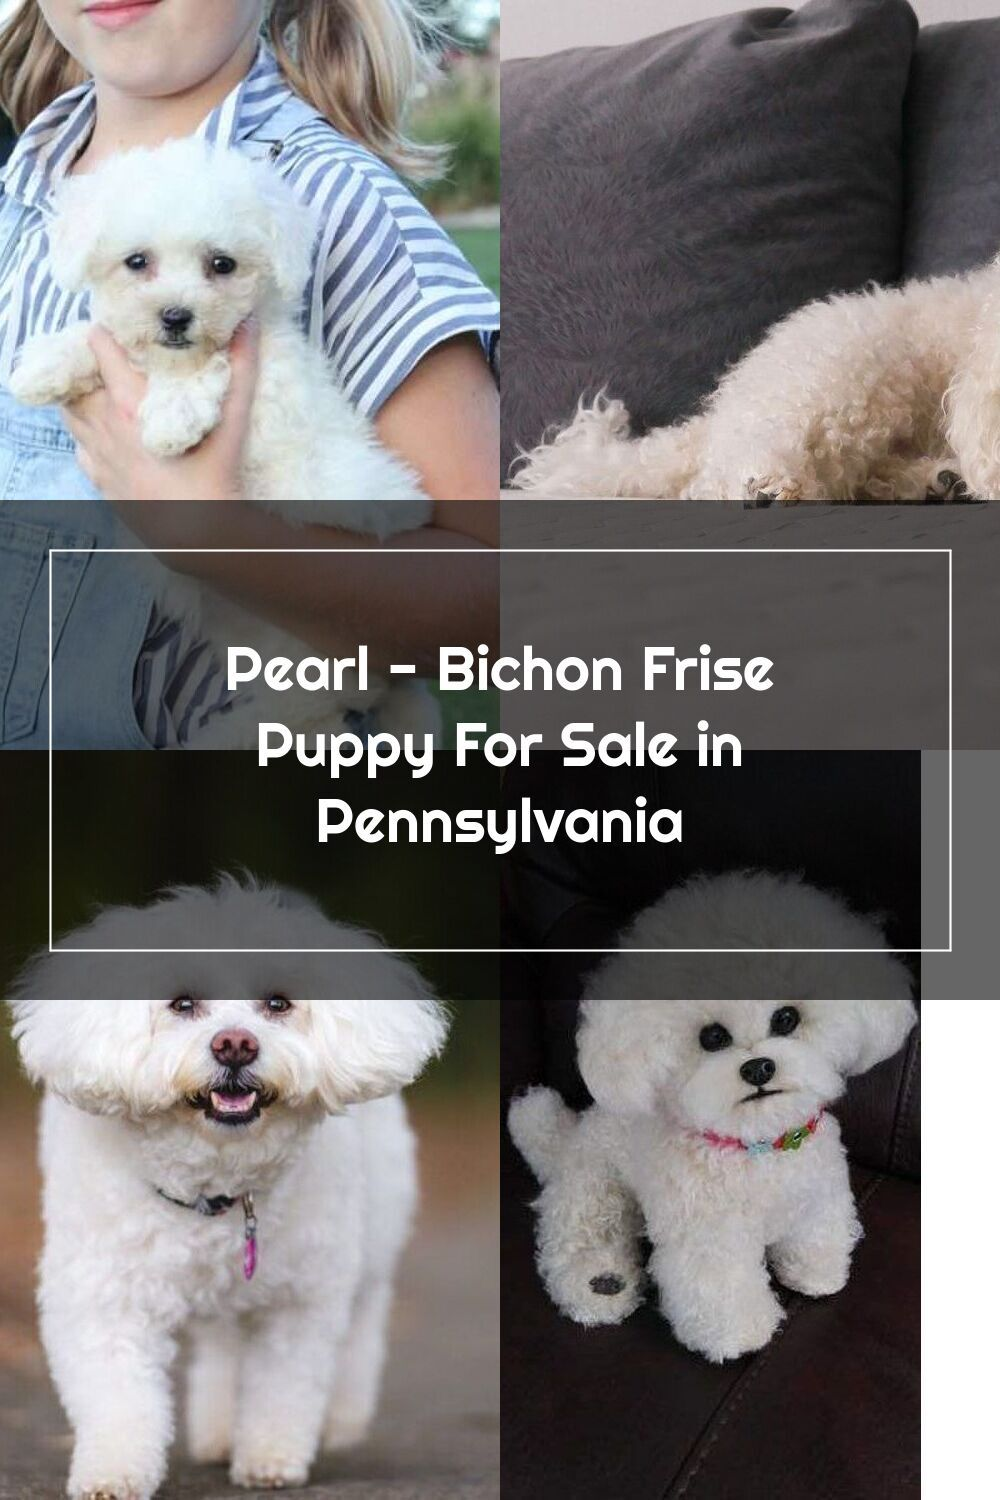 Pearl Bichon Frise Puppy For Sale in Pennsylvania in